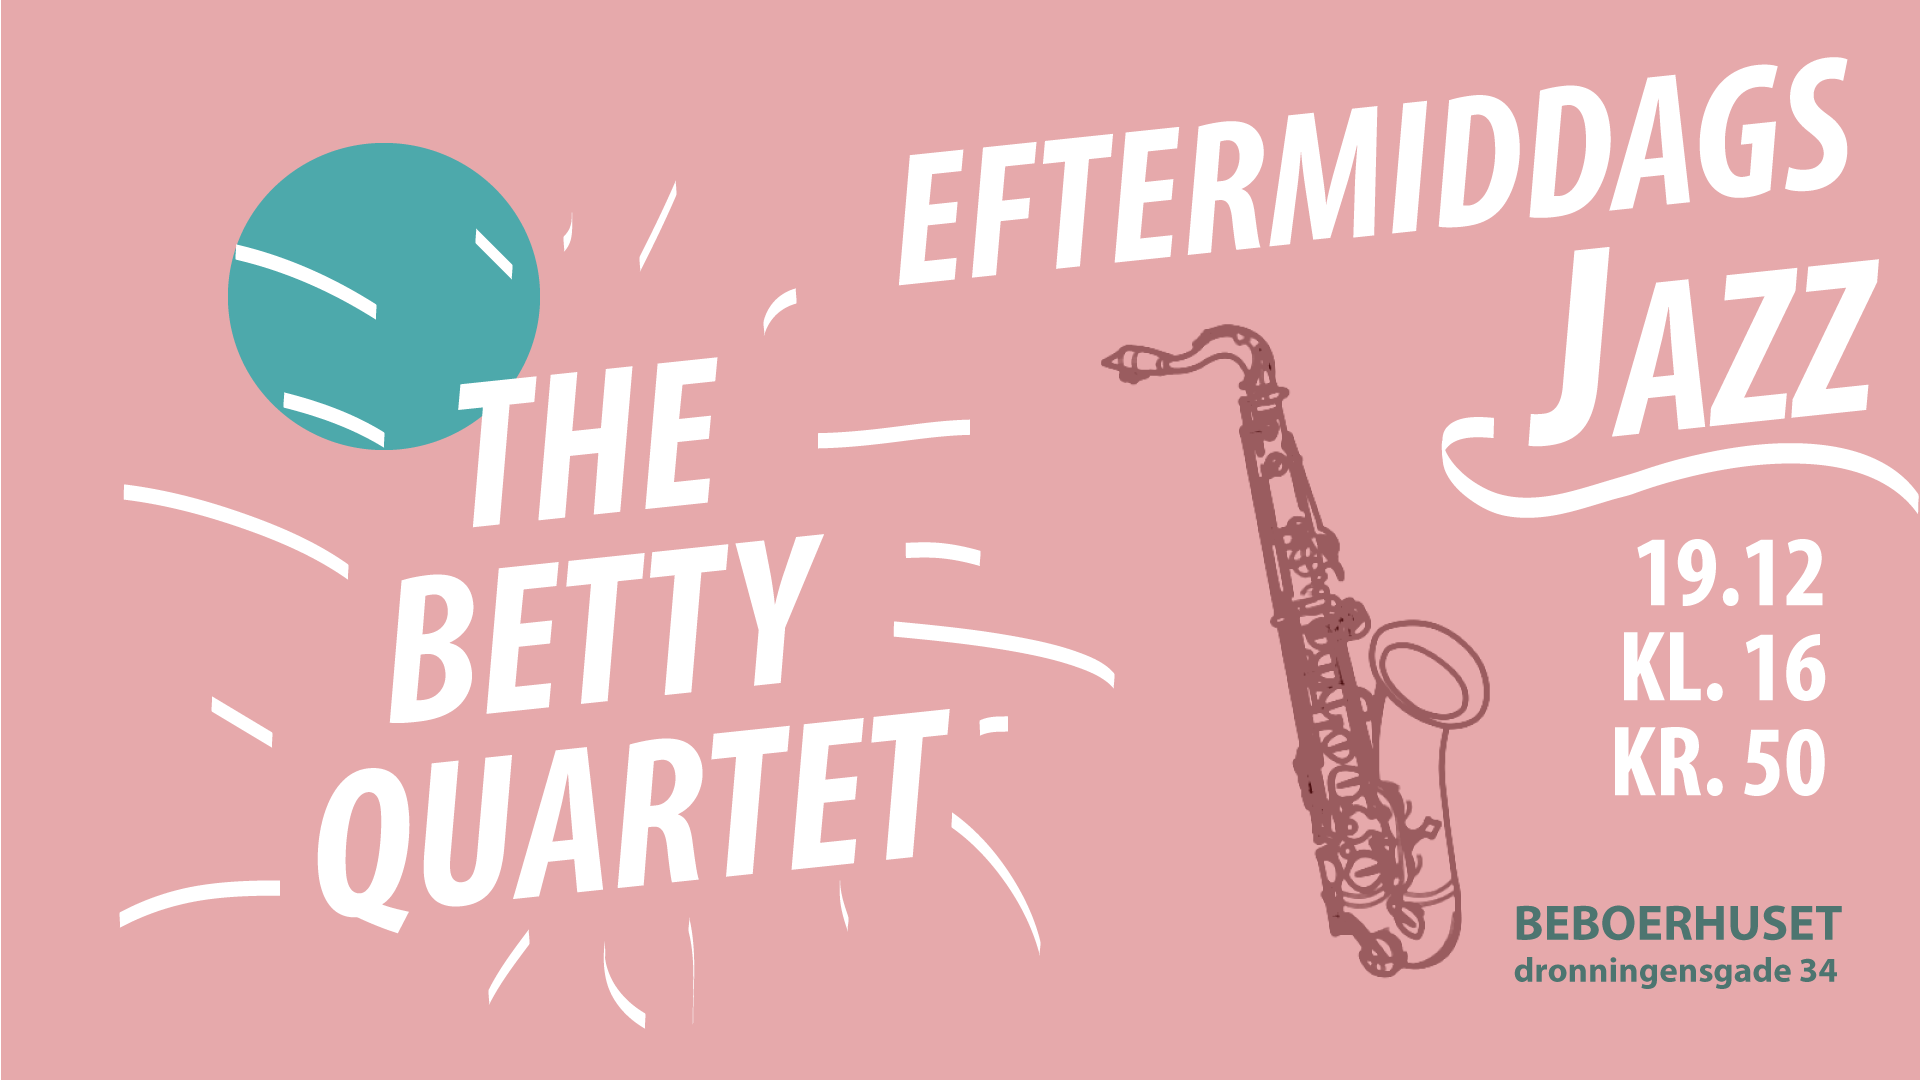 Eftermiddags Jazz – med The Betty Quartet